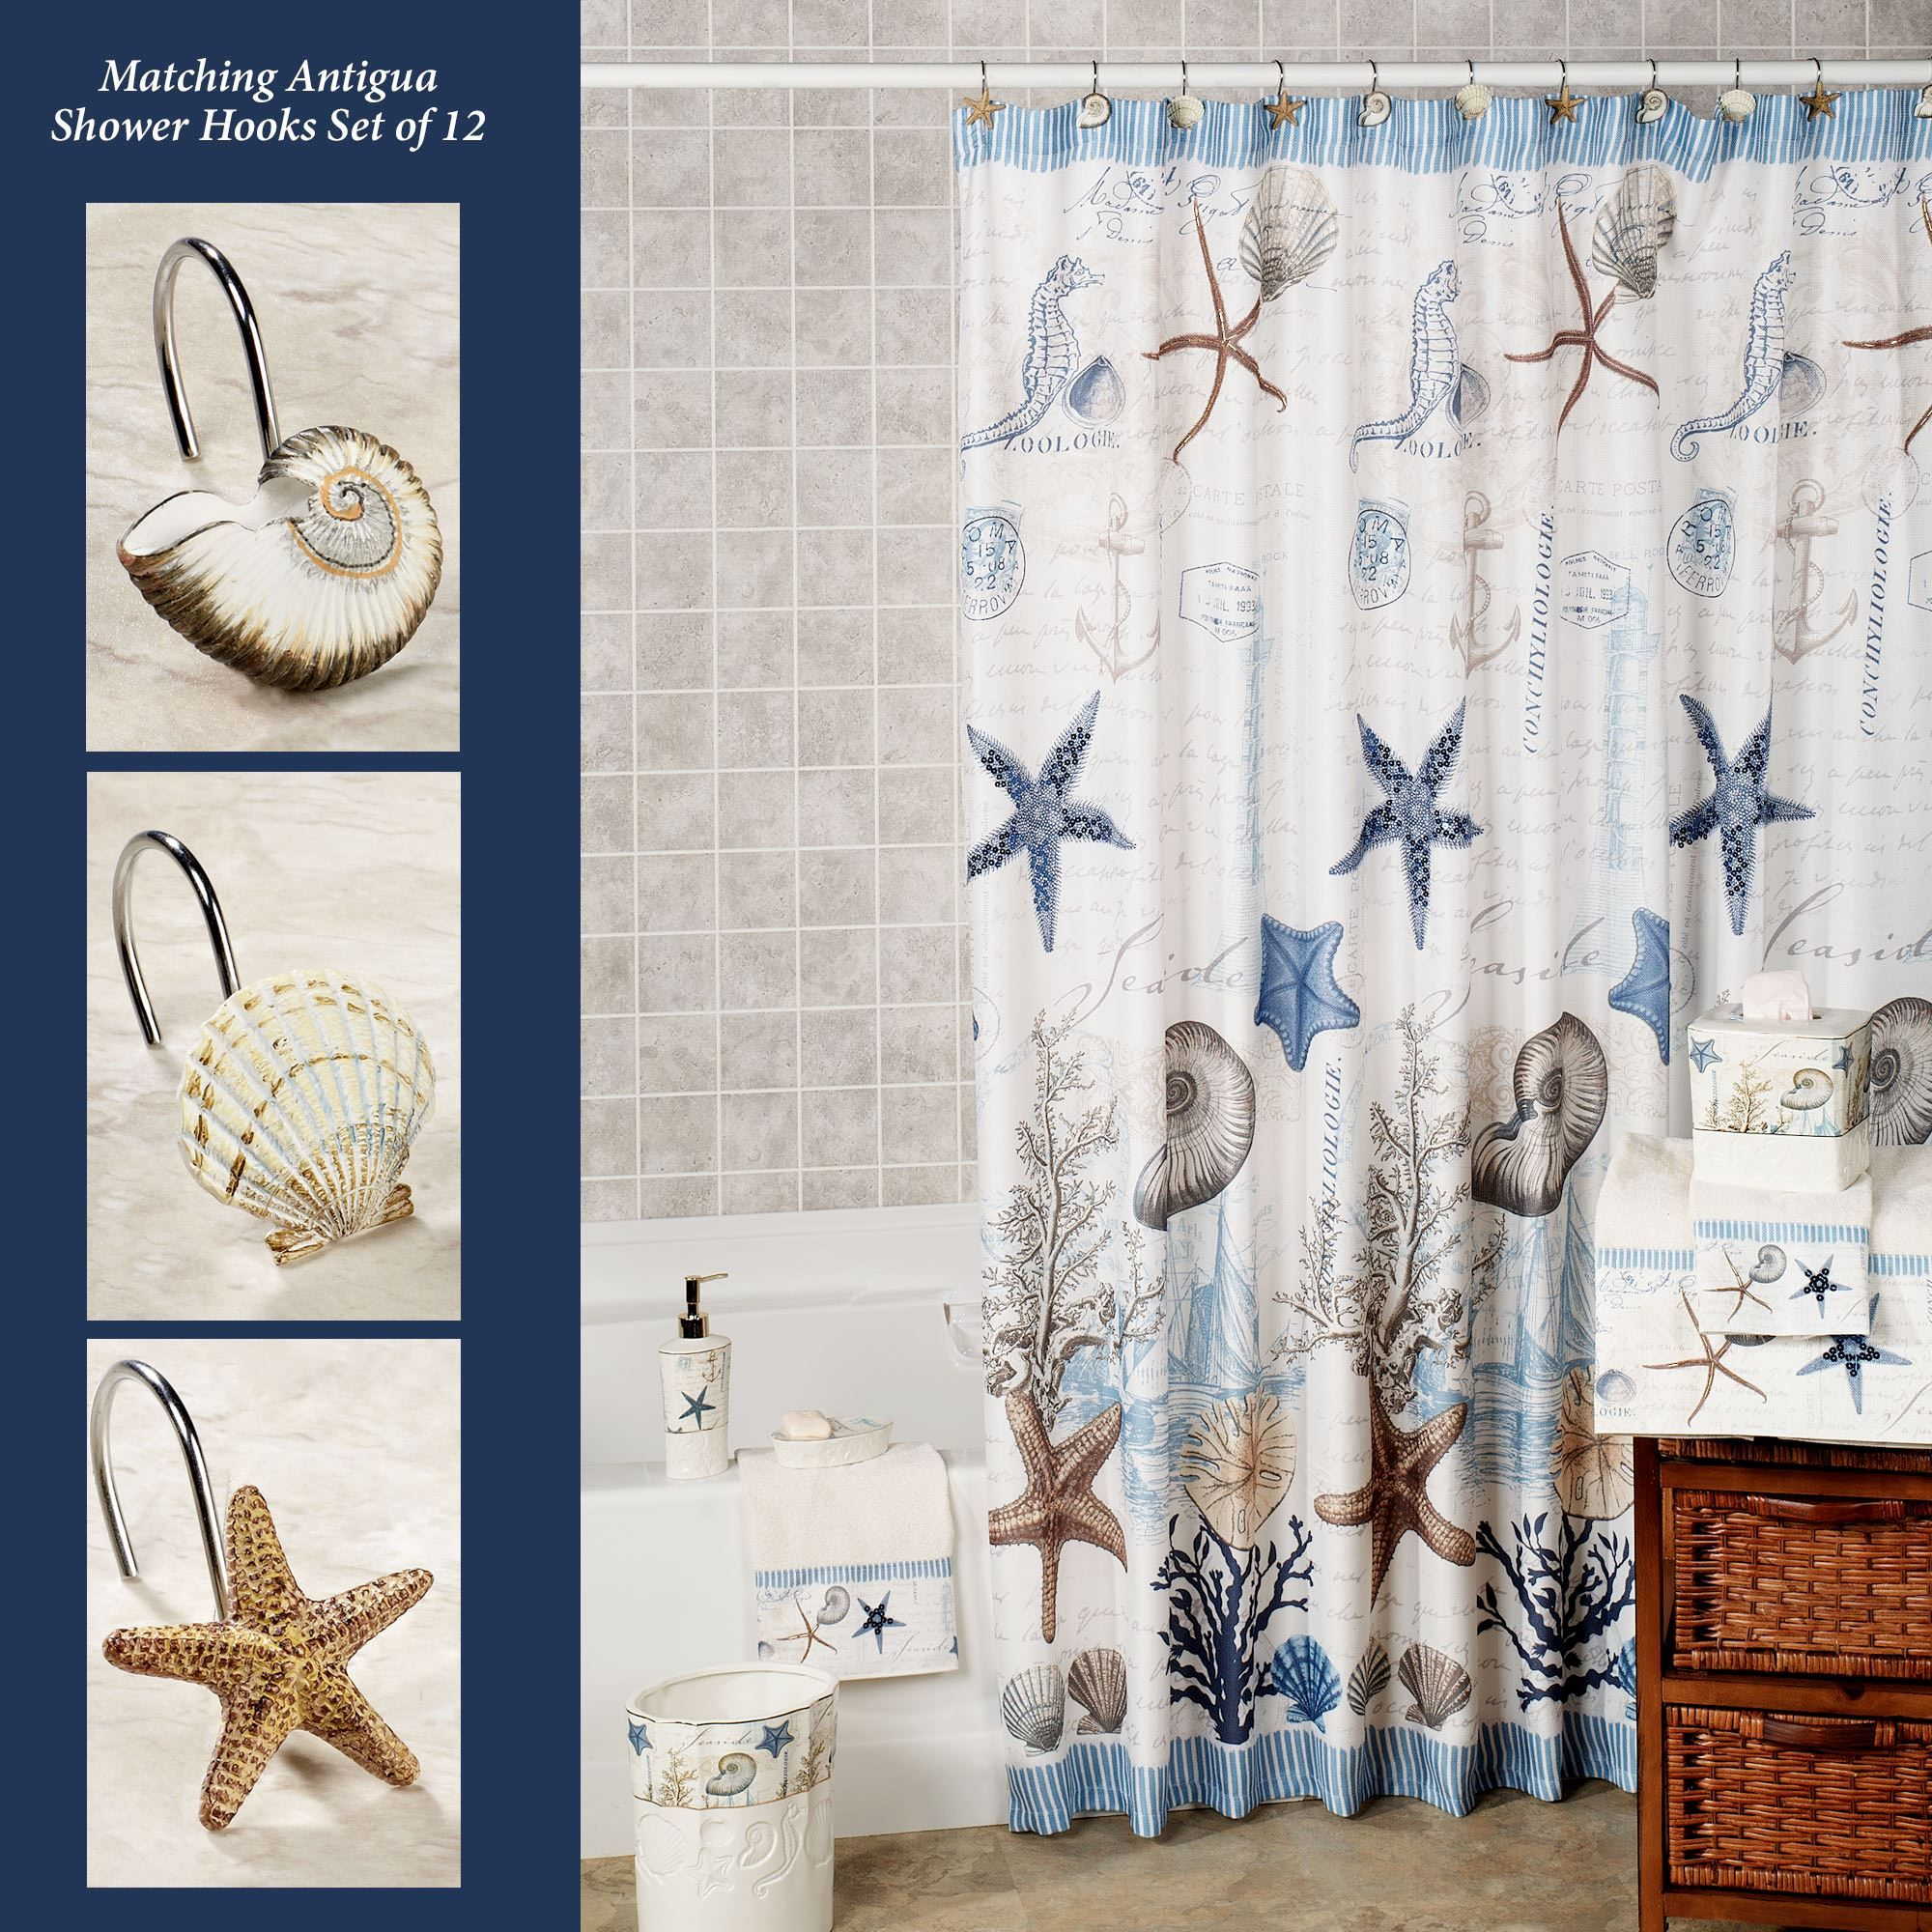 Antigua Starfish Coastal Shower Curtain Armada 19 05 19 En 2019